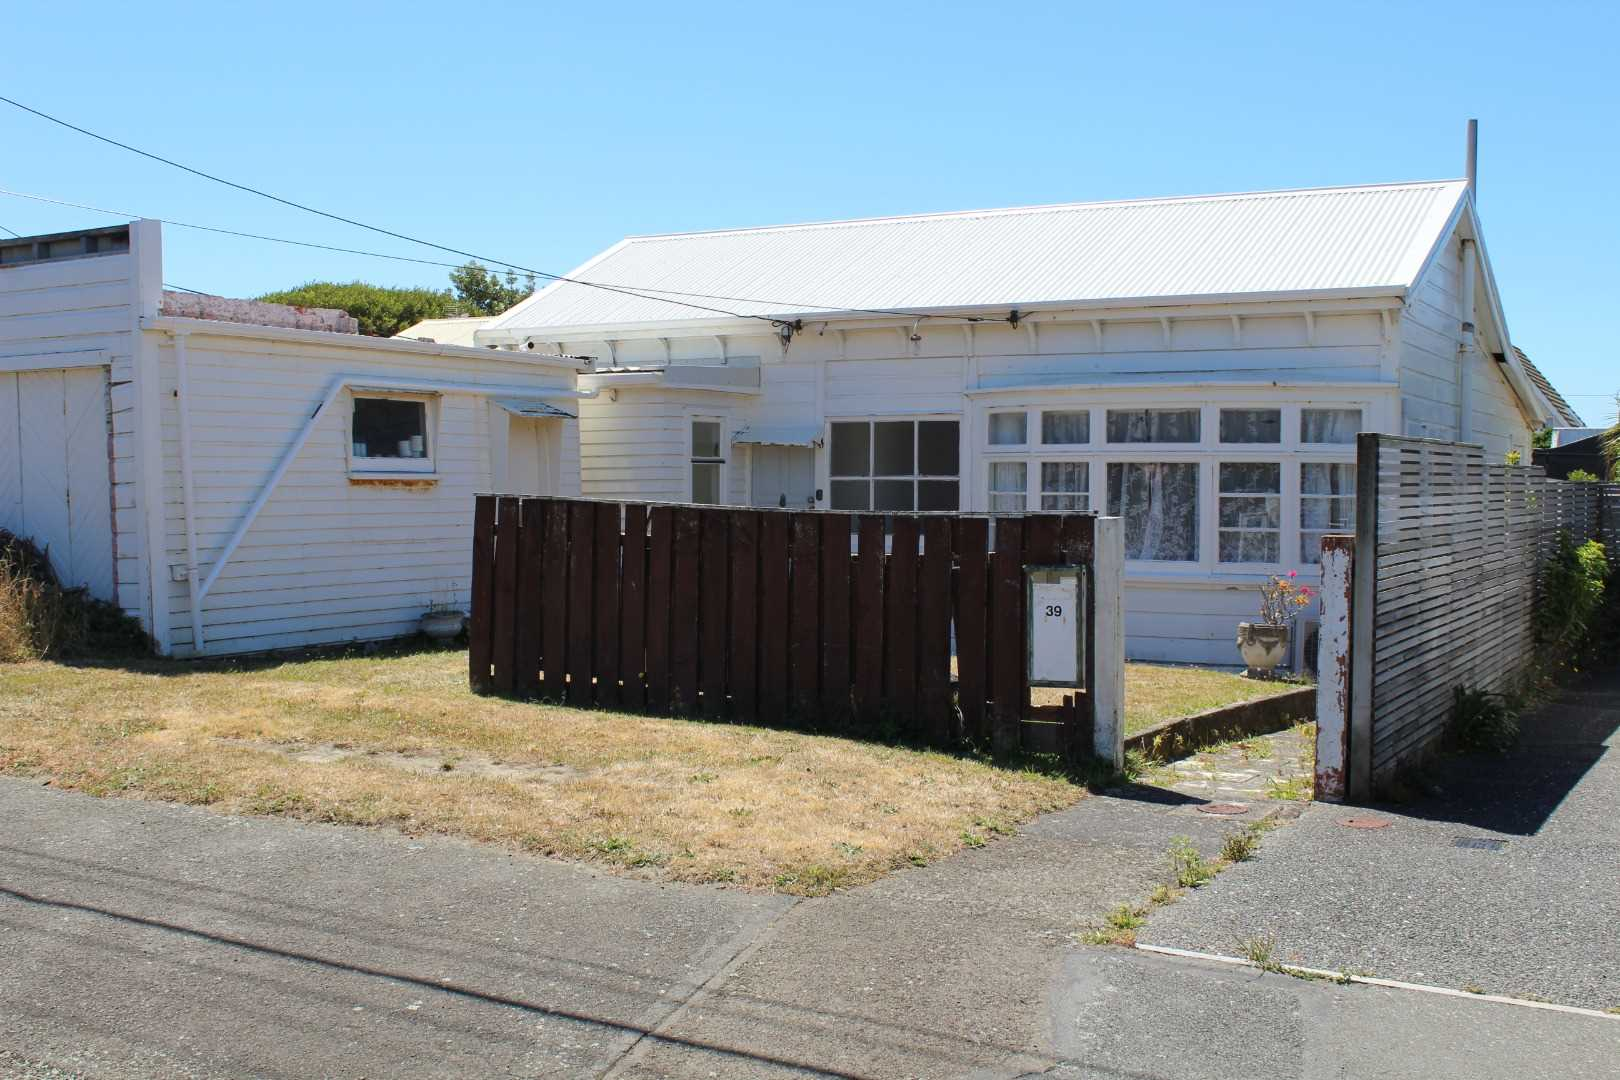 Real Estate For Rent Houses & Apartments : Original Seatoun Cottage, Wellington